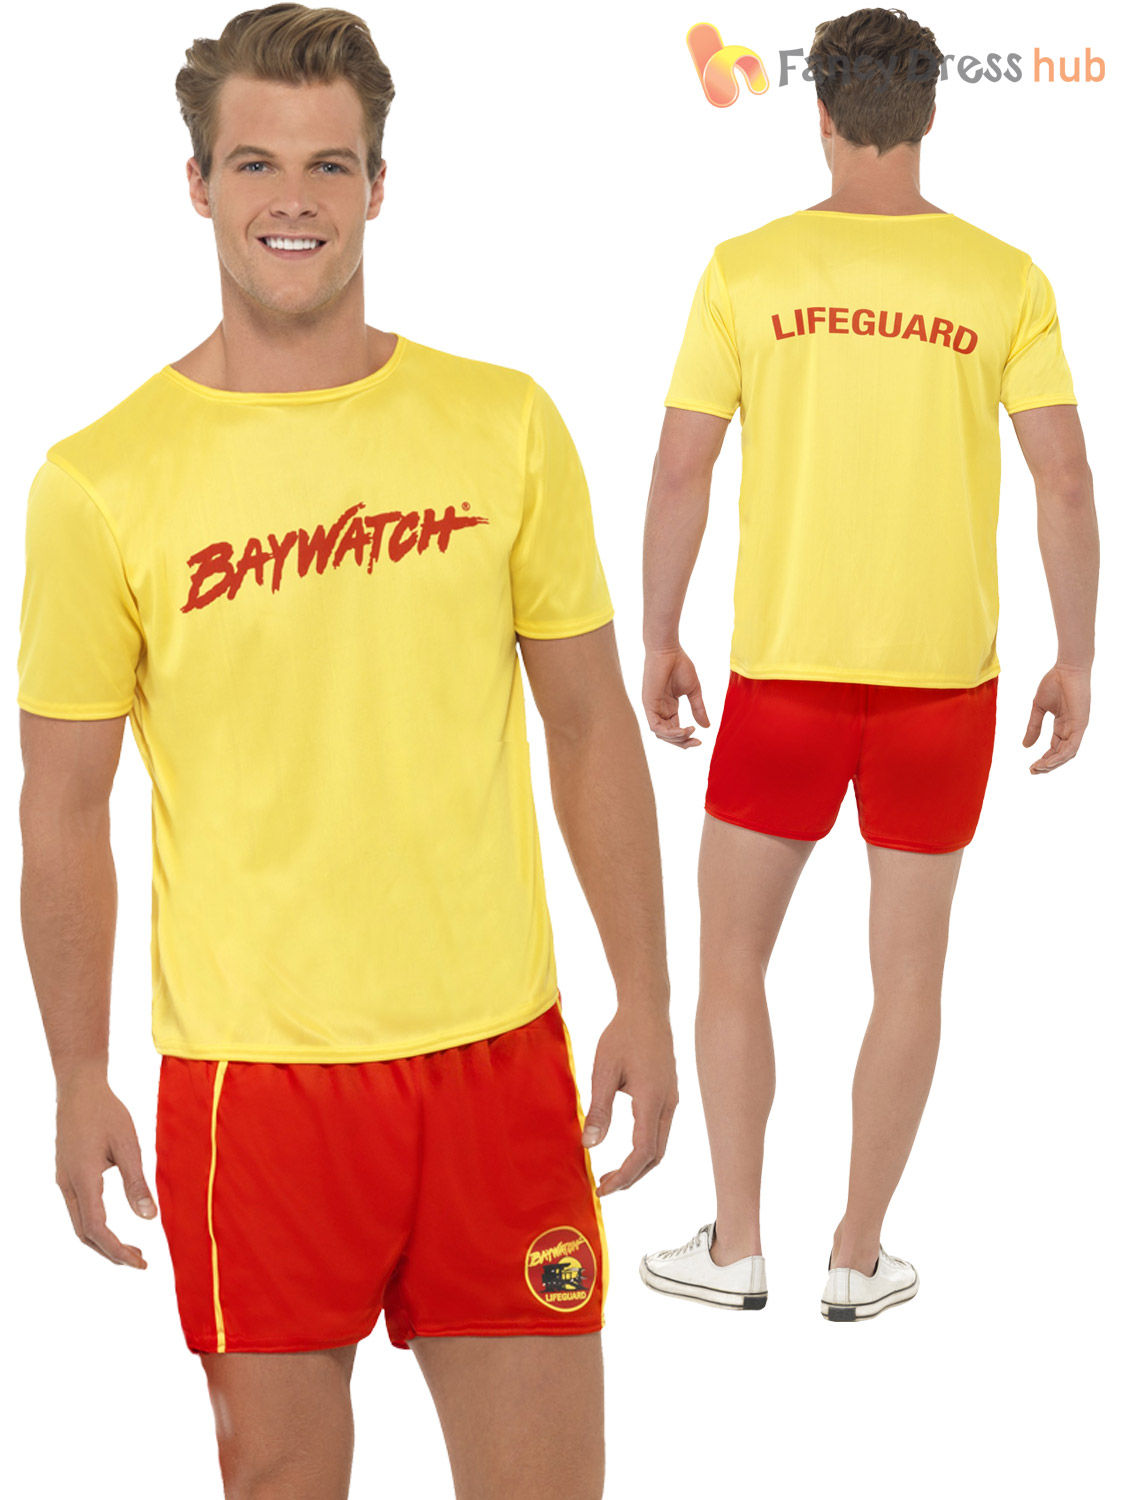 74400b2cbc92 Mens Baywatch Lifeguard Sports Uniform Fancy Dress 90S Tv Stag Party ...